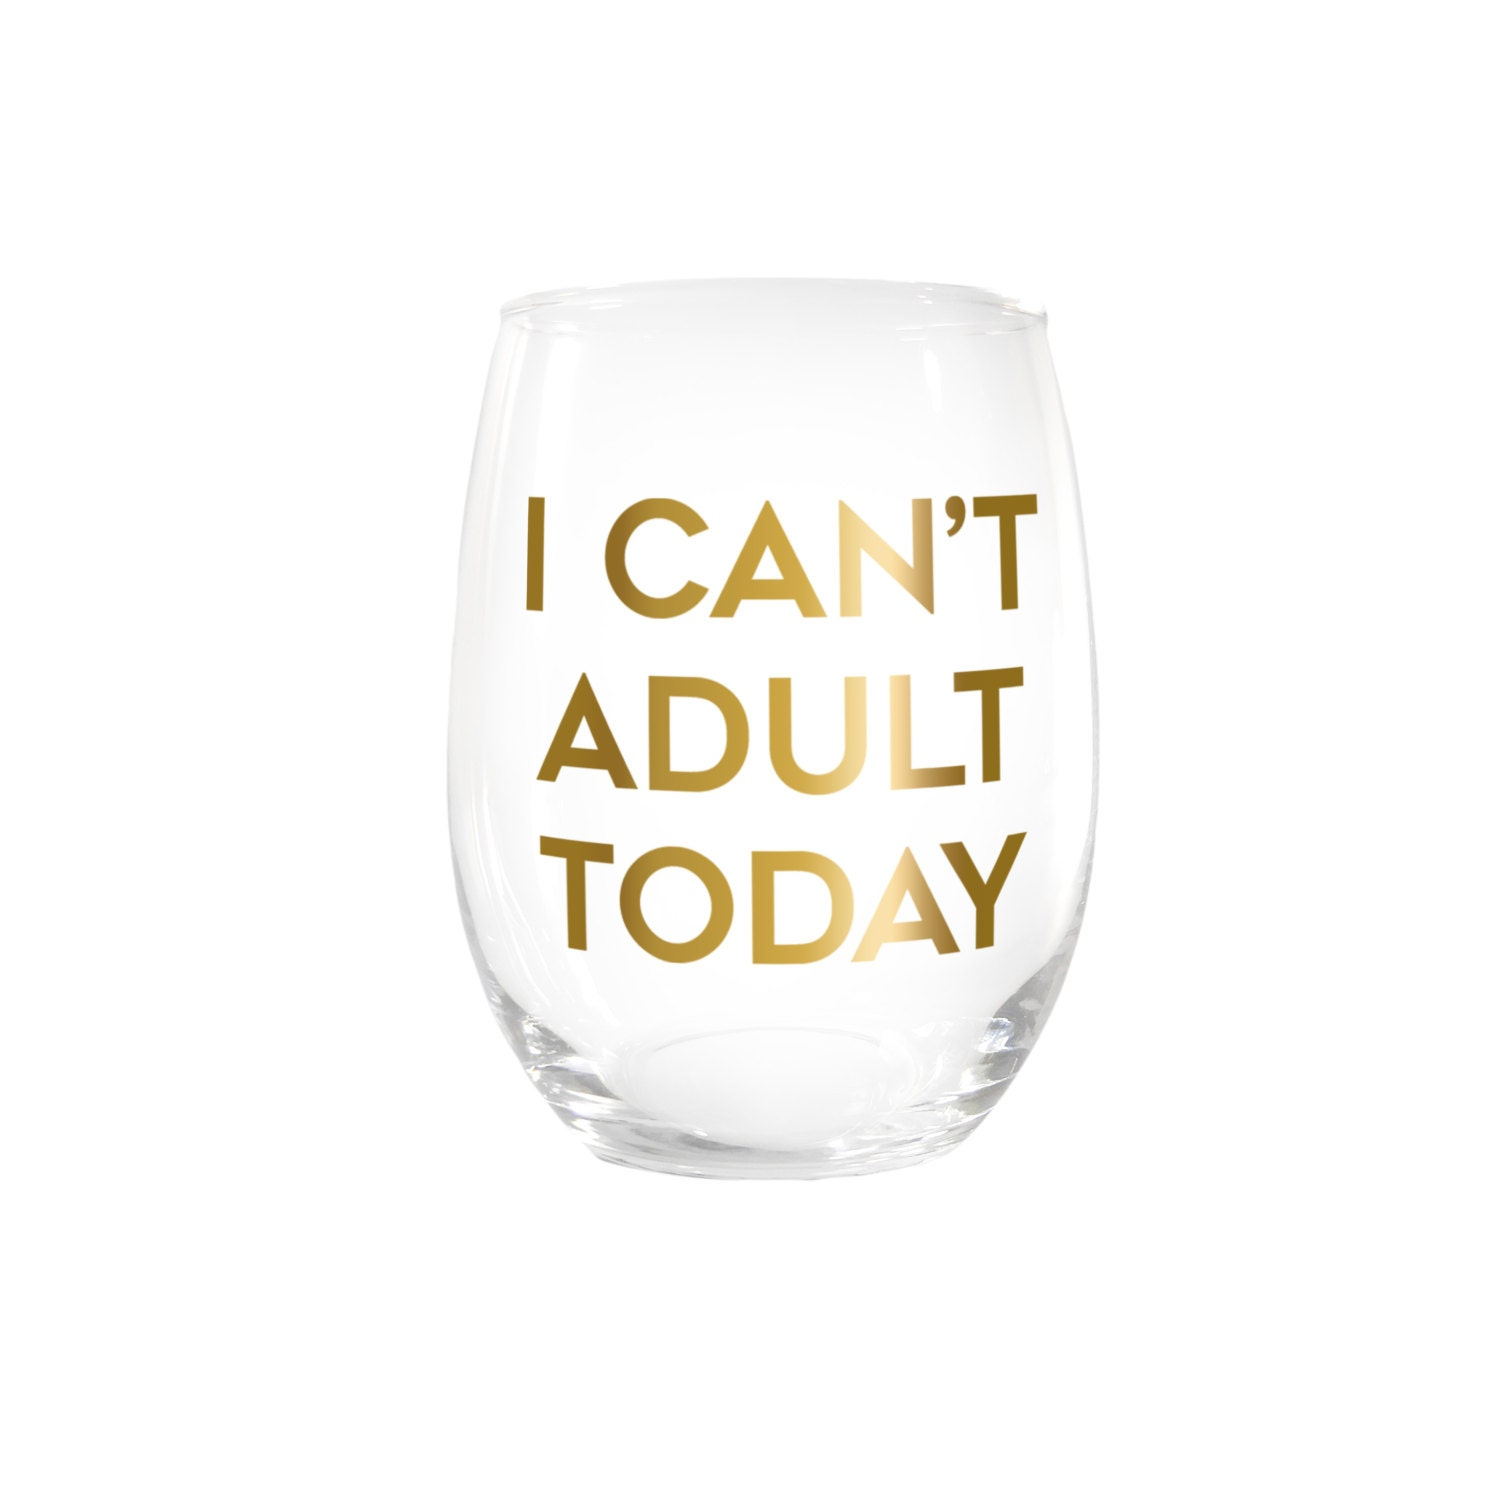 I can t adult today stemless wine glass funny gift